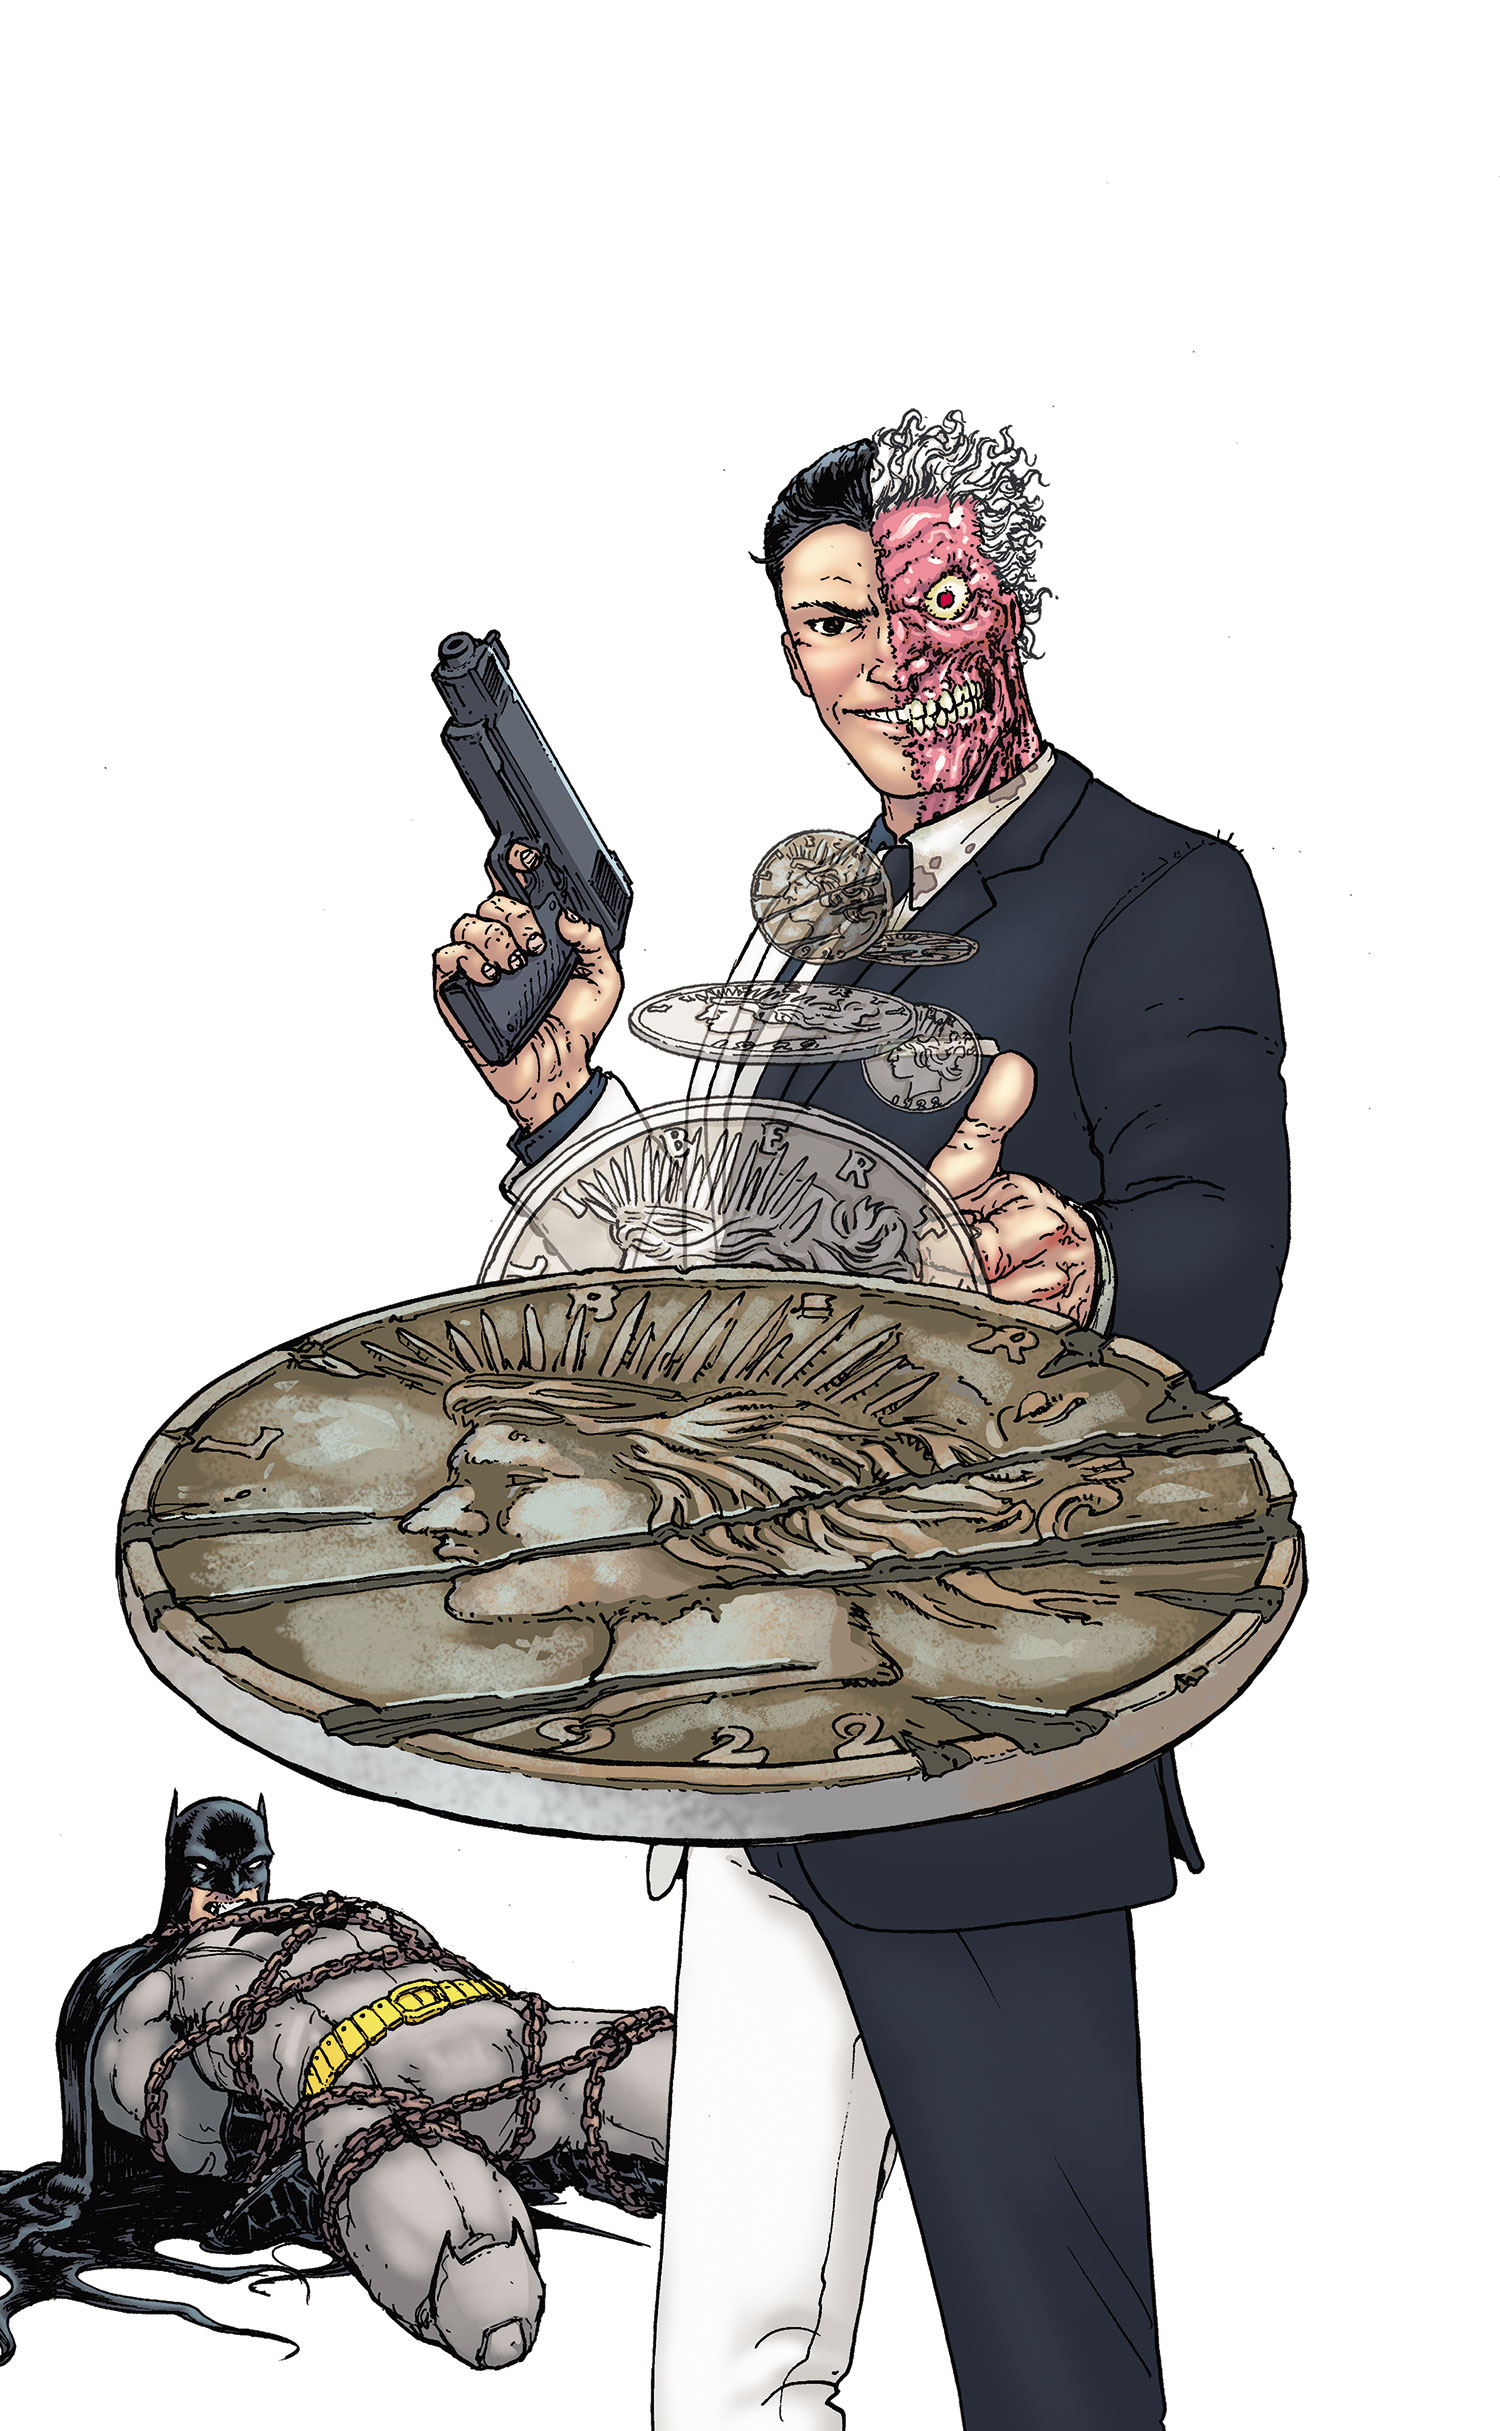 Two Face Feels Lucky In New Batman Arkham City Image: Batman And Robin Vol 2 23.1: Two-Face